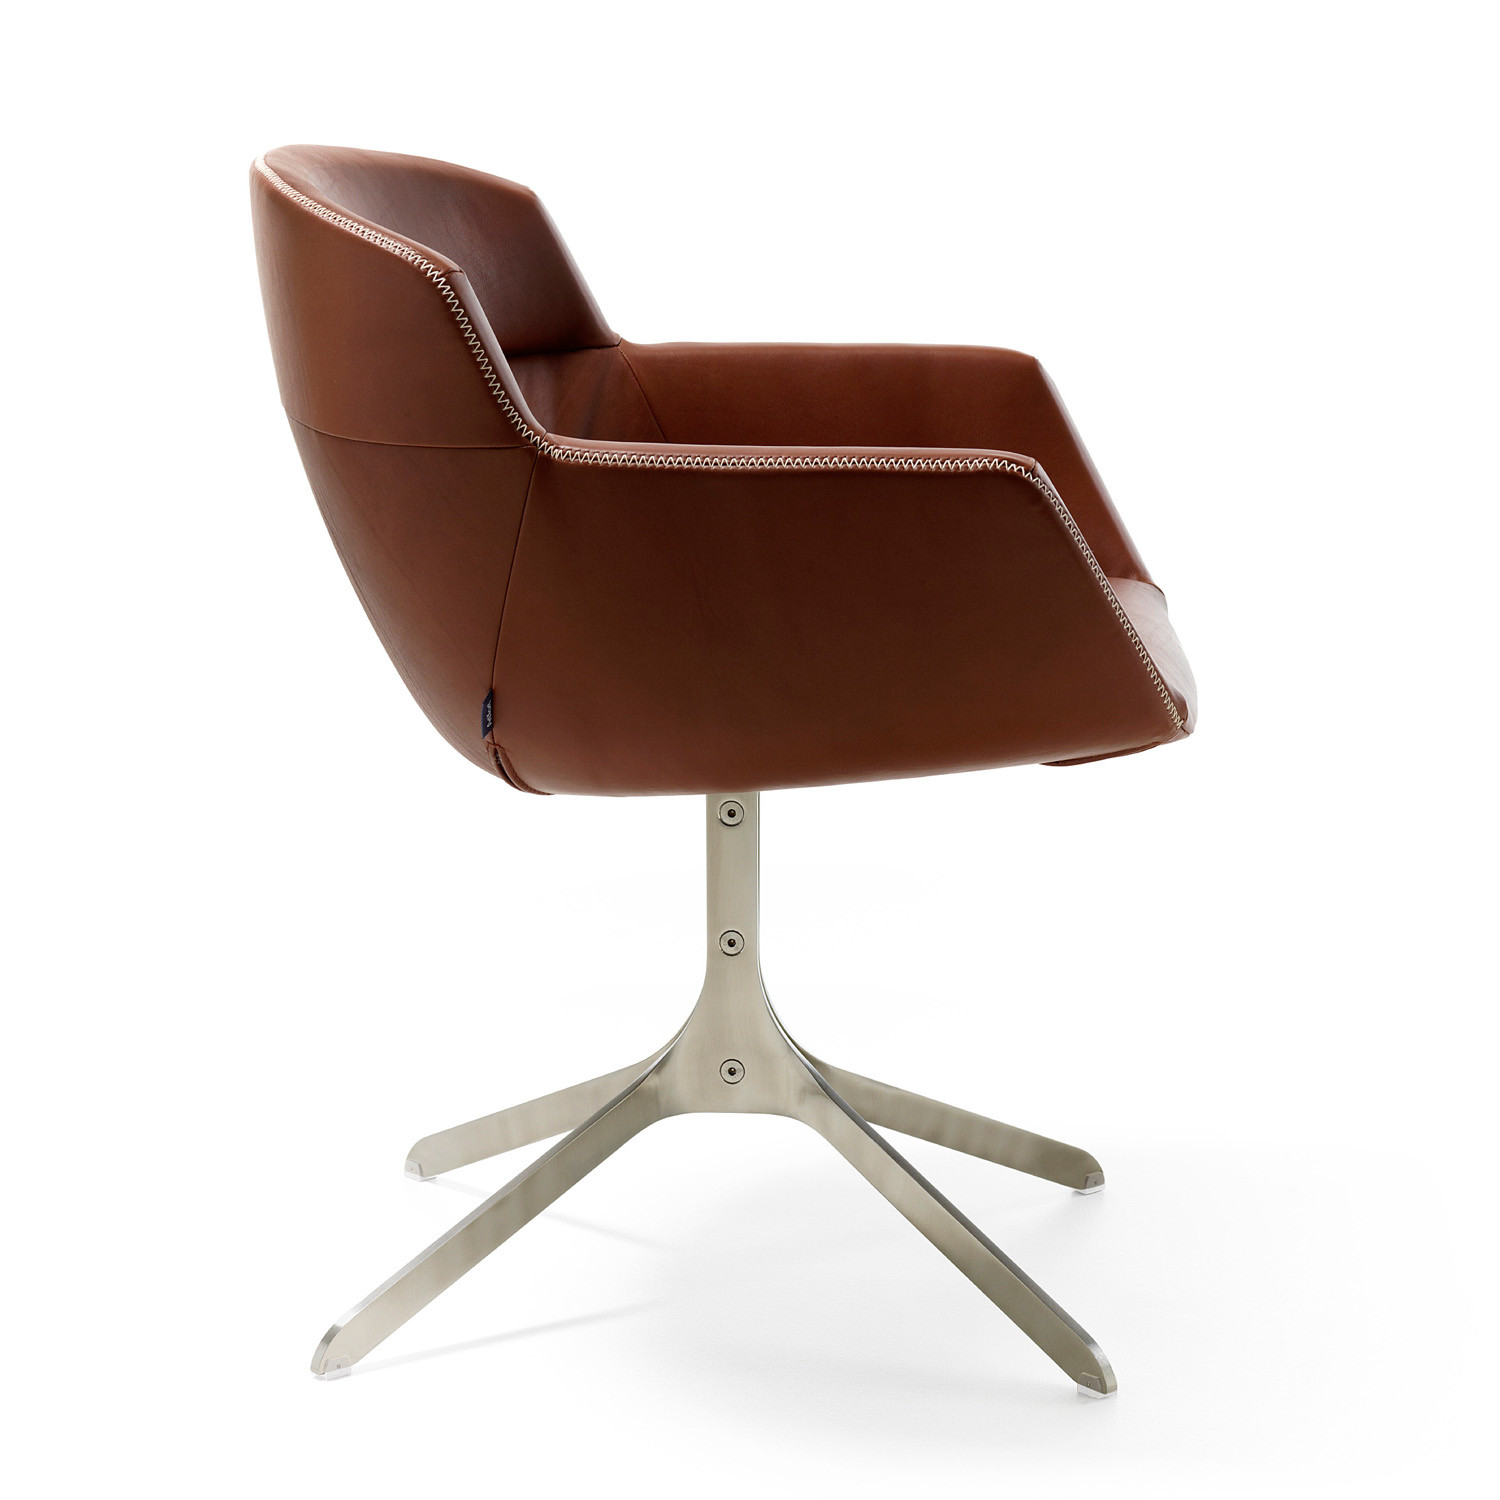 Mood Armchair with stainless-steel strip base